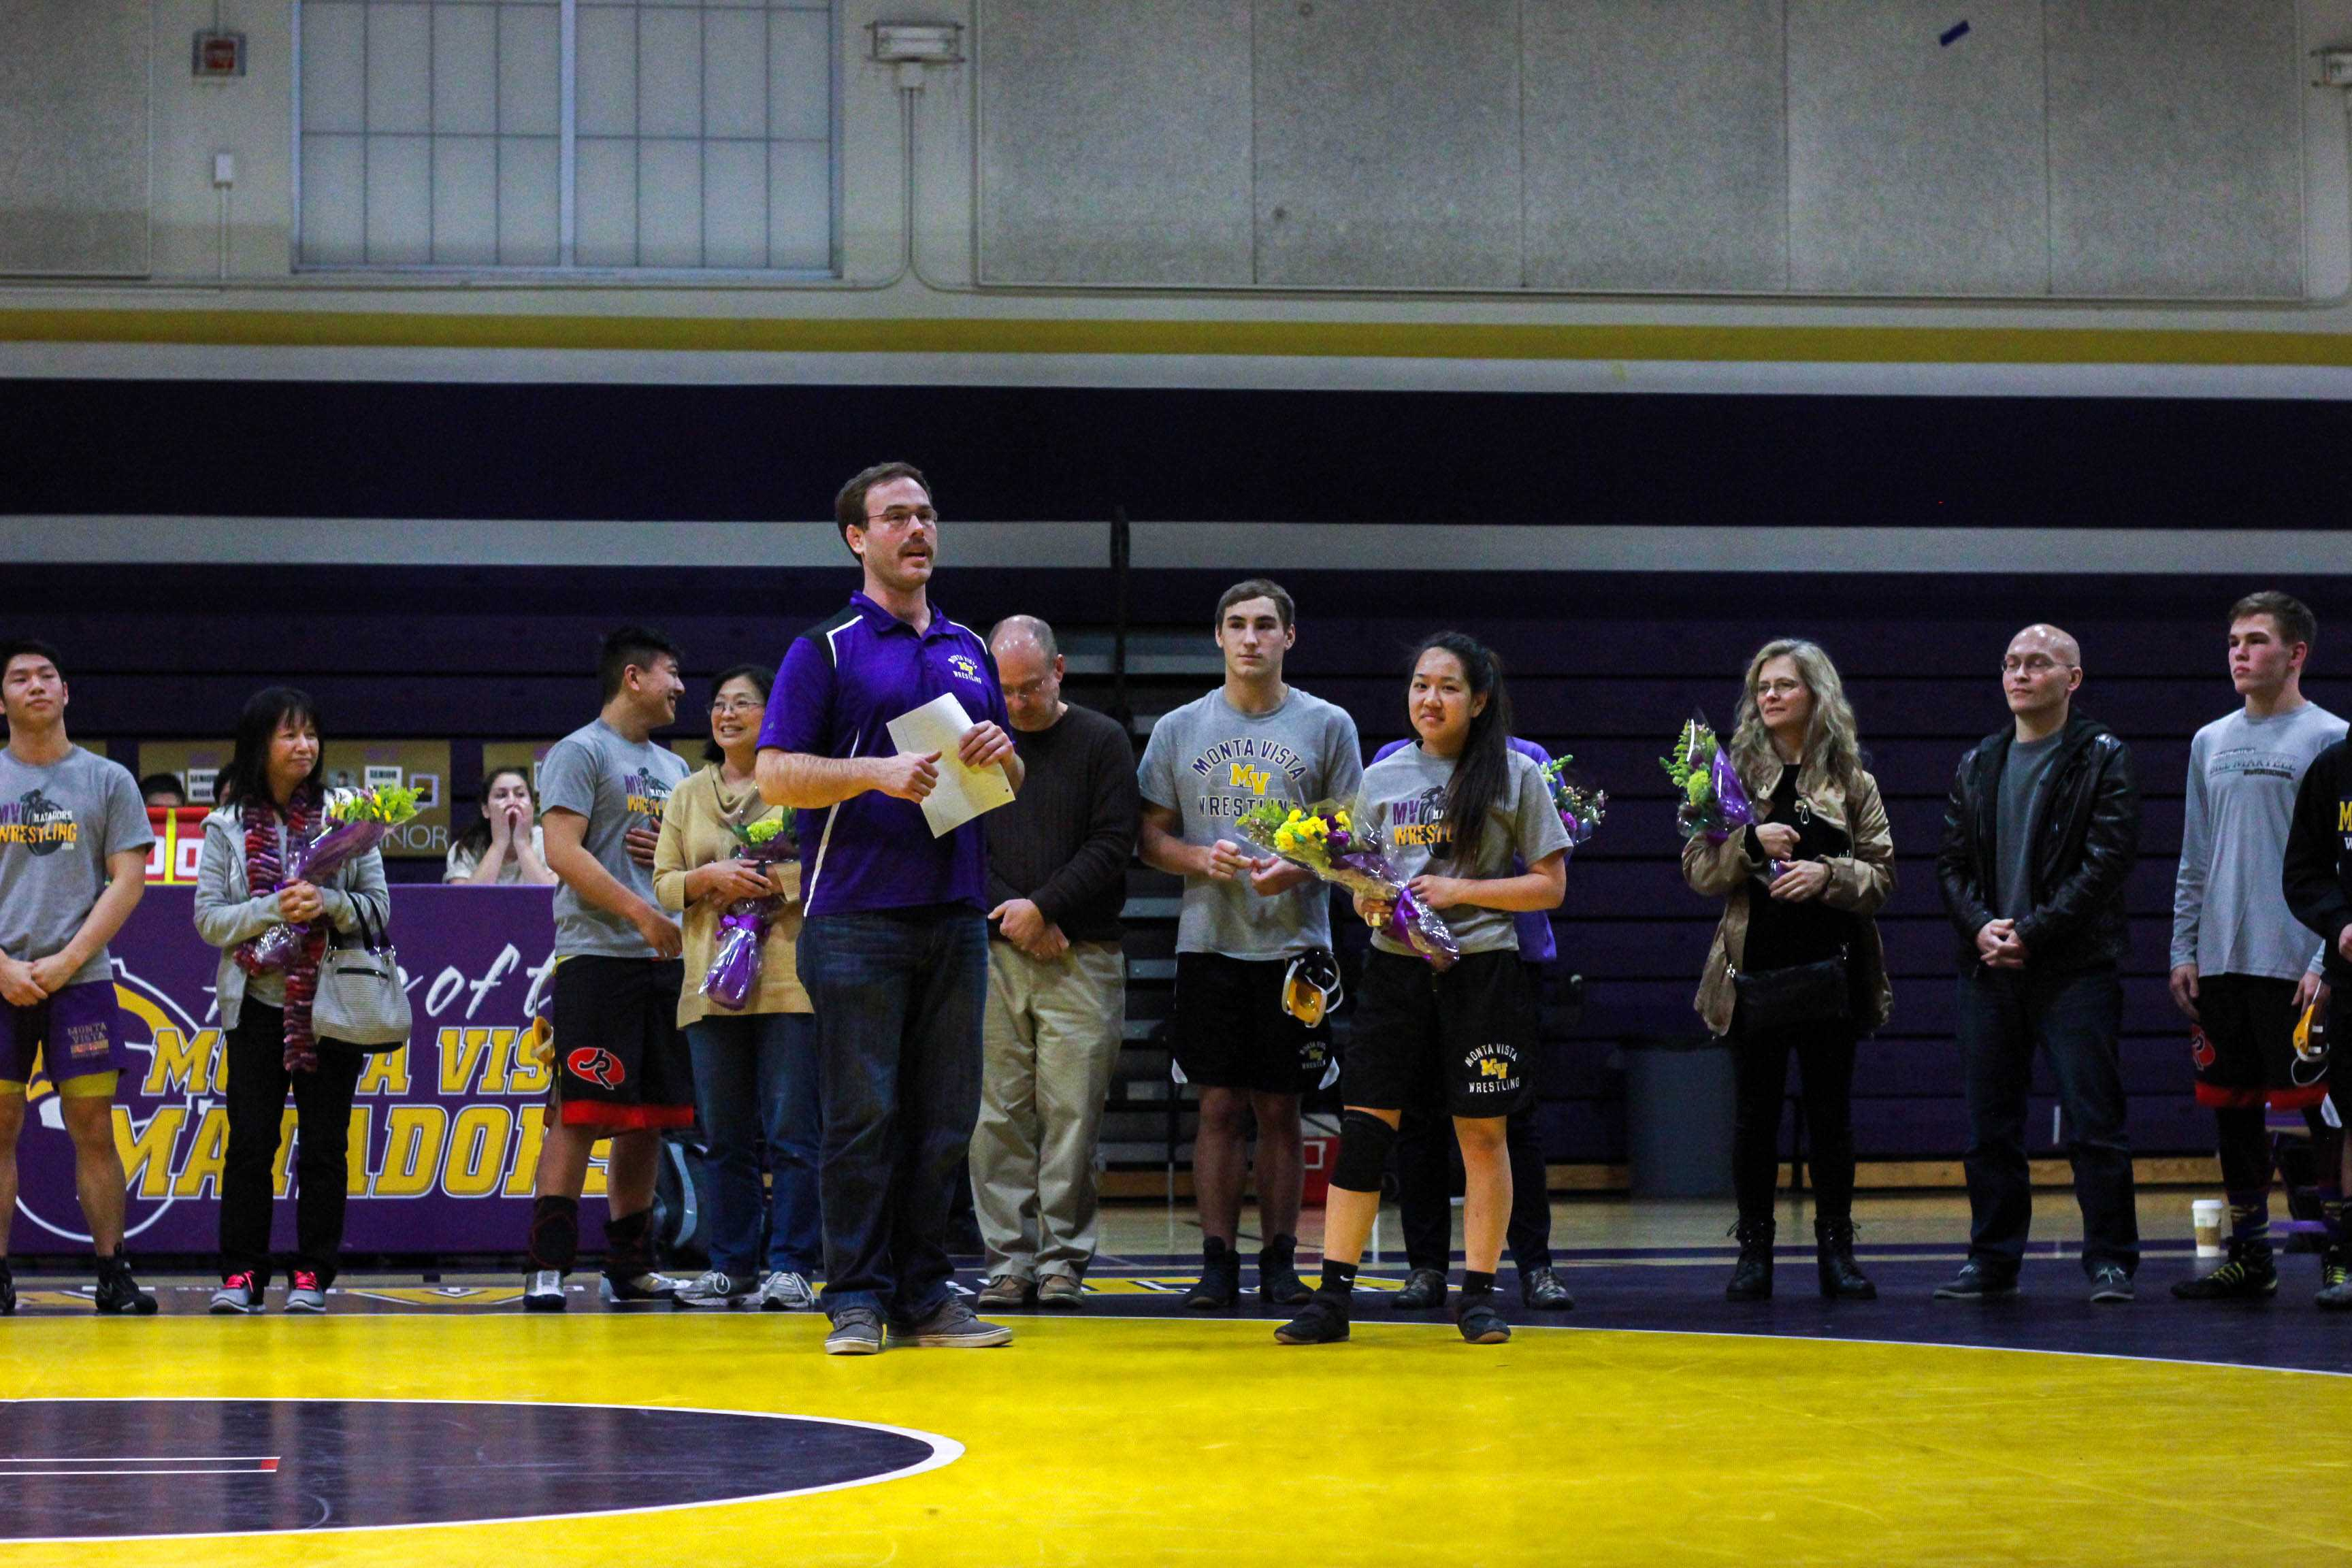 All the seniors line up on the wrestling mat after the JV matches. Senior night gave recognition to the seniors. Photo by Vanessa Qin.